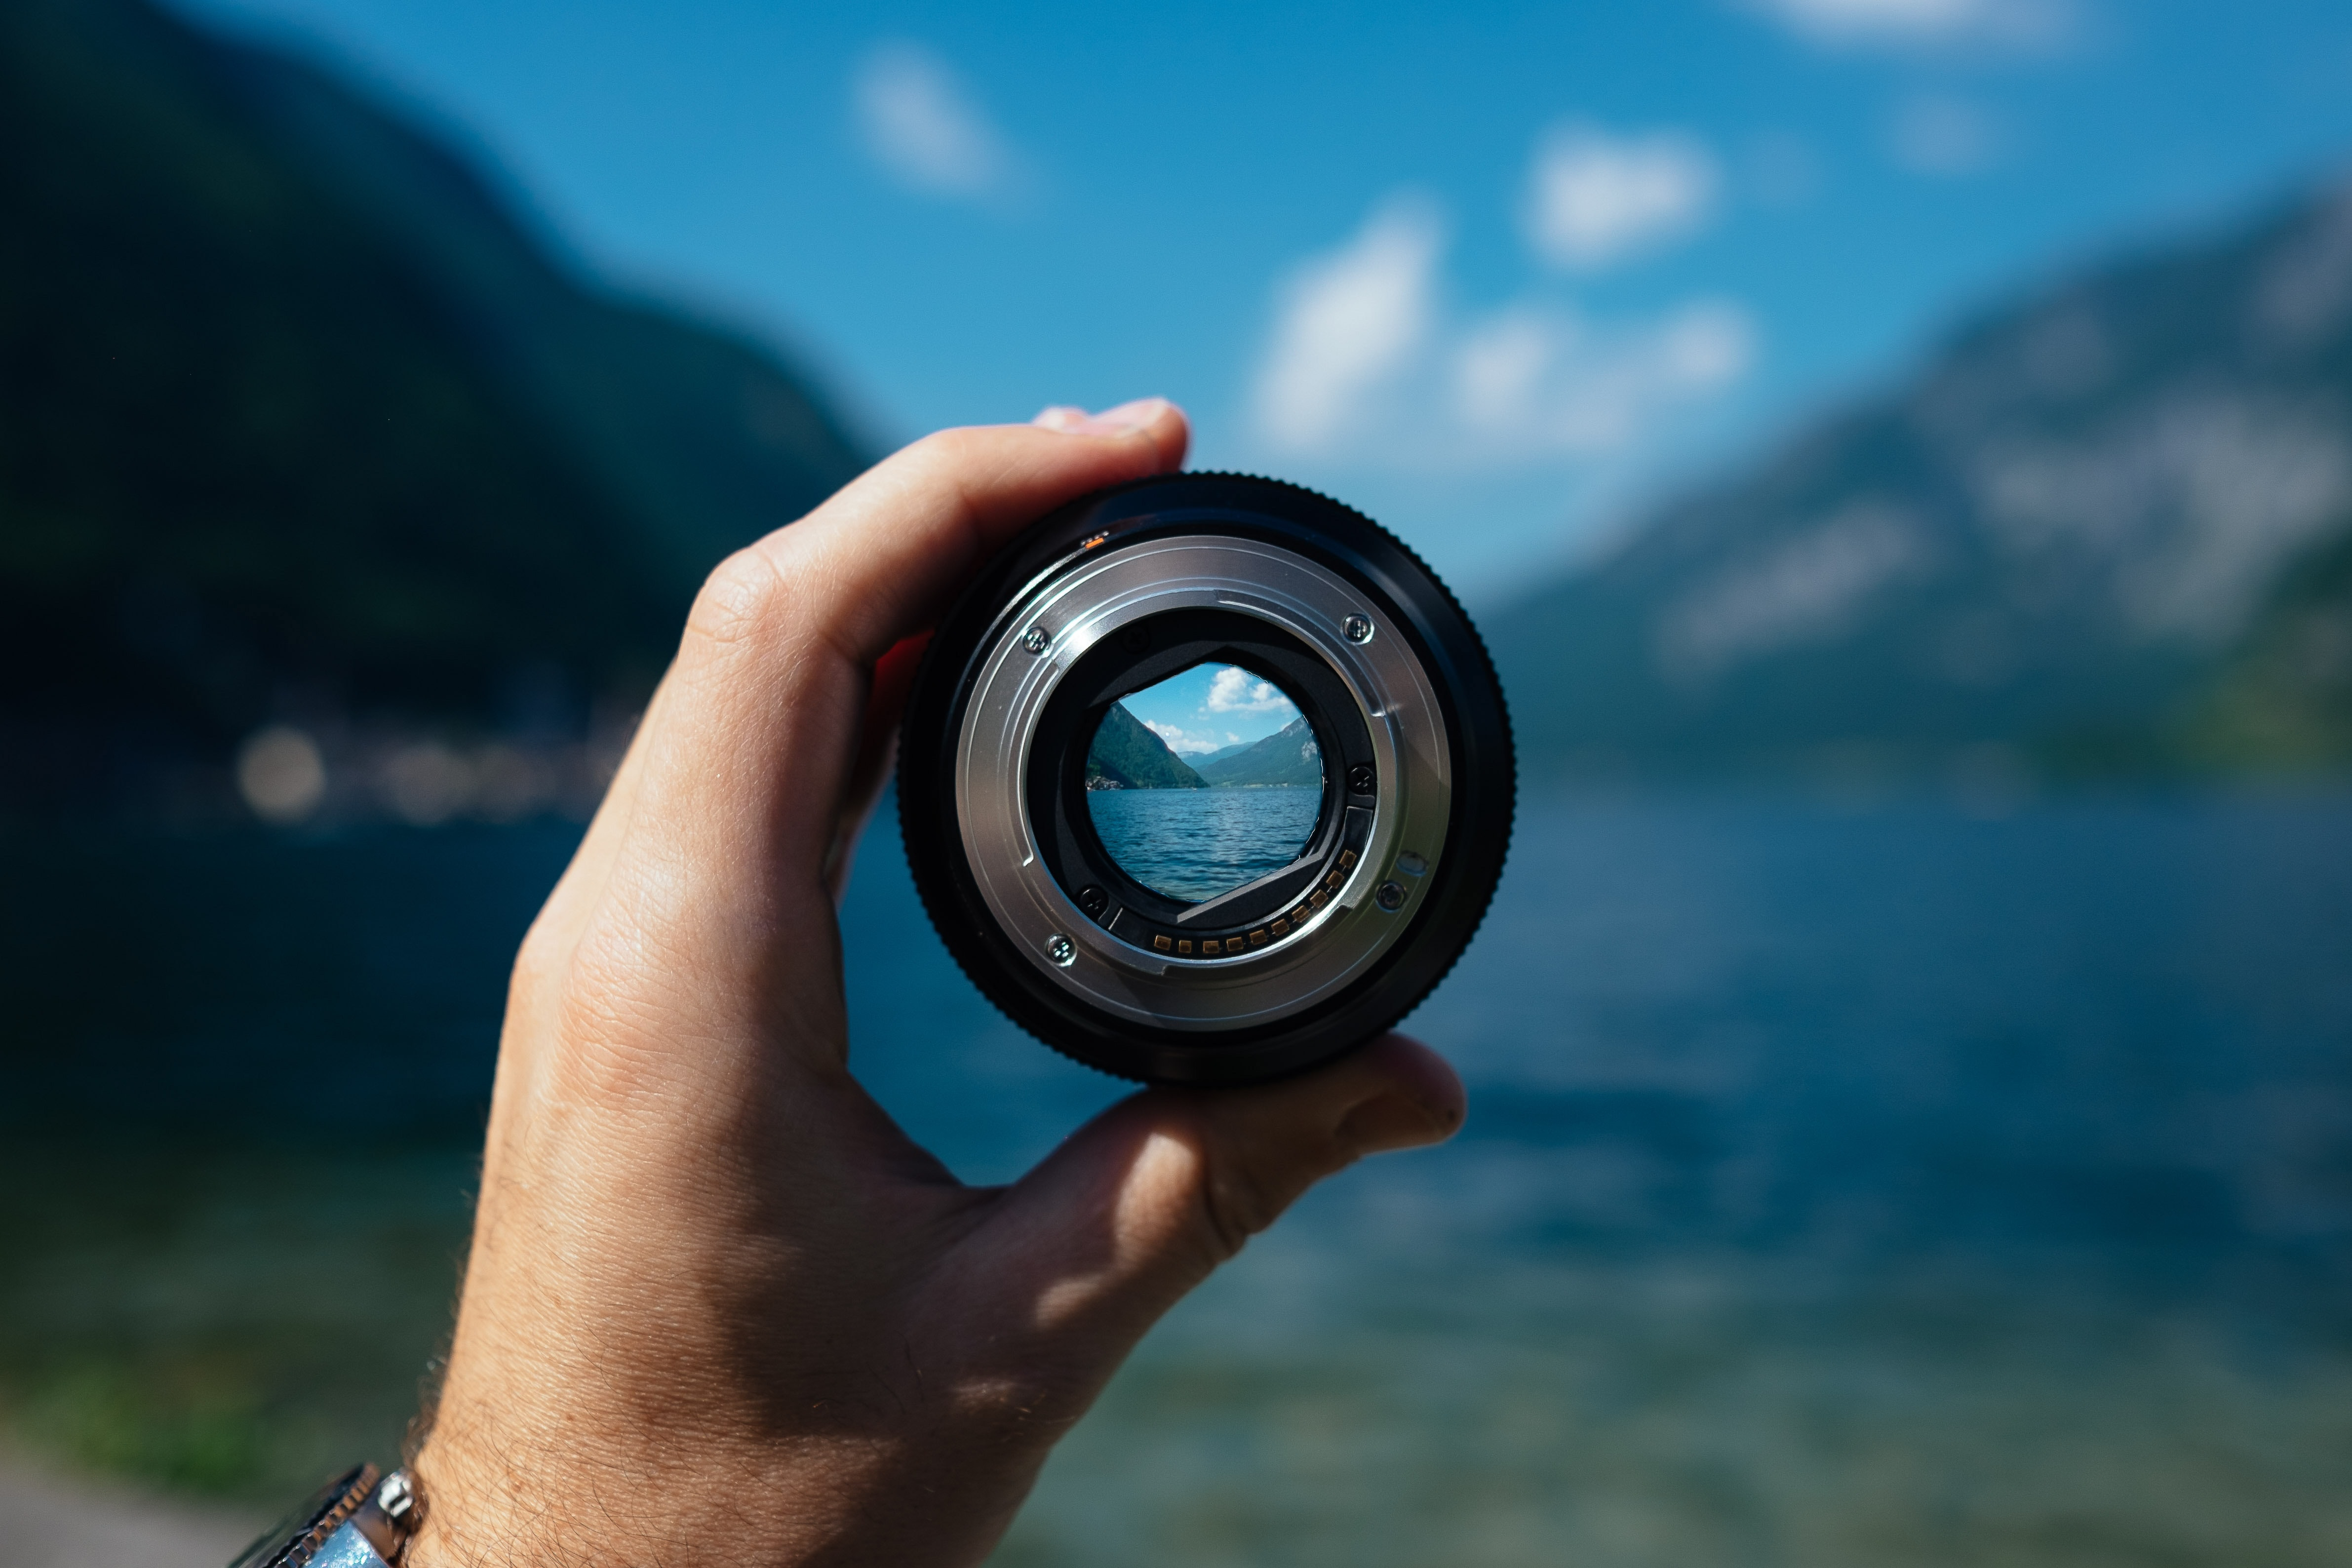 Camera lens focuses on a beautiful background, highlighting how Turning Point helps therapists in private practice see their future clearly.